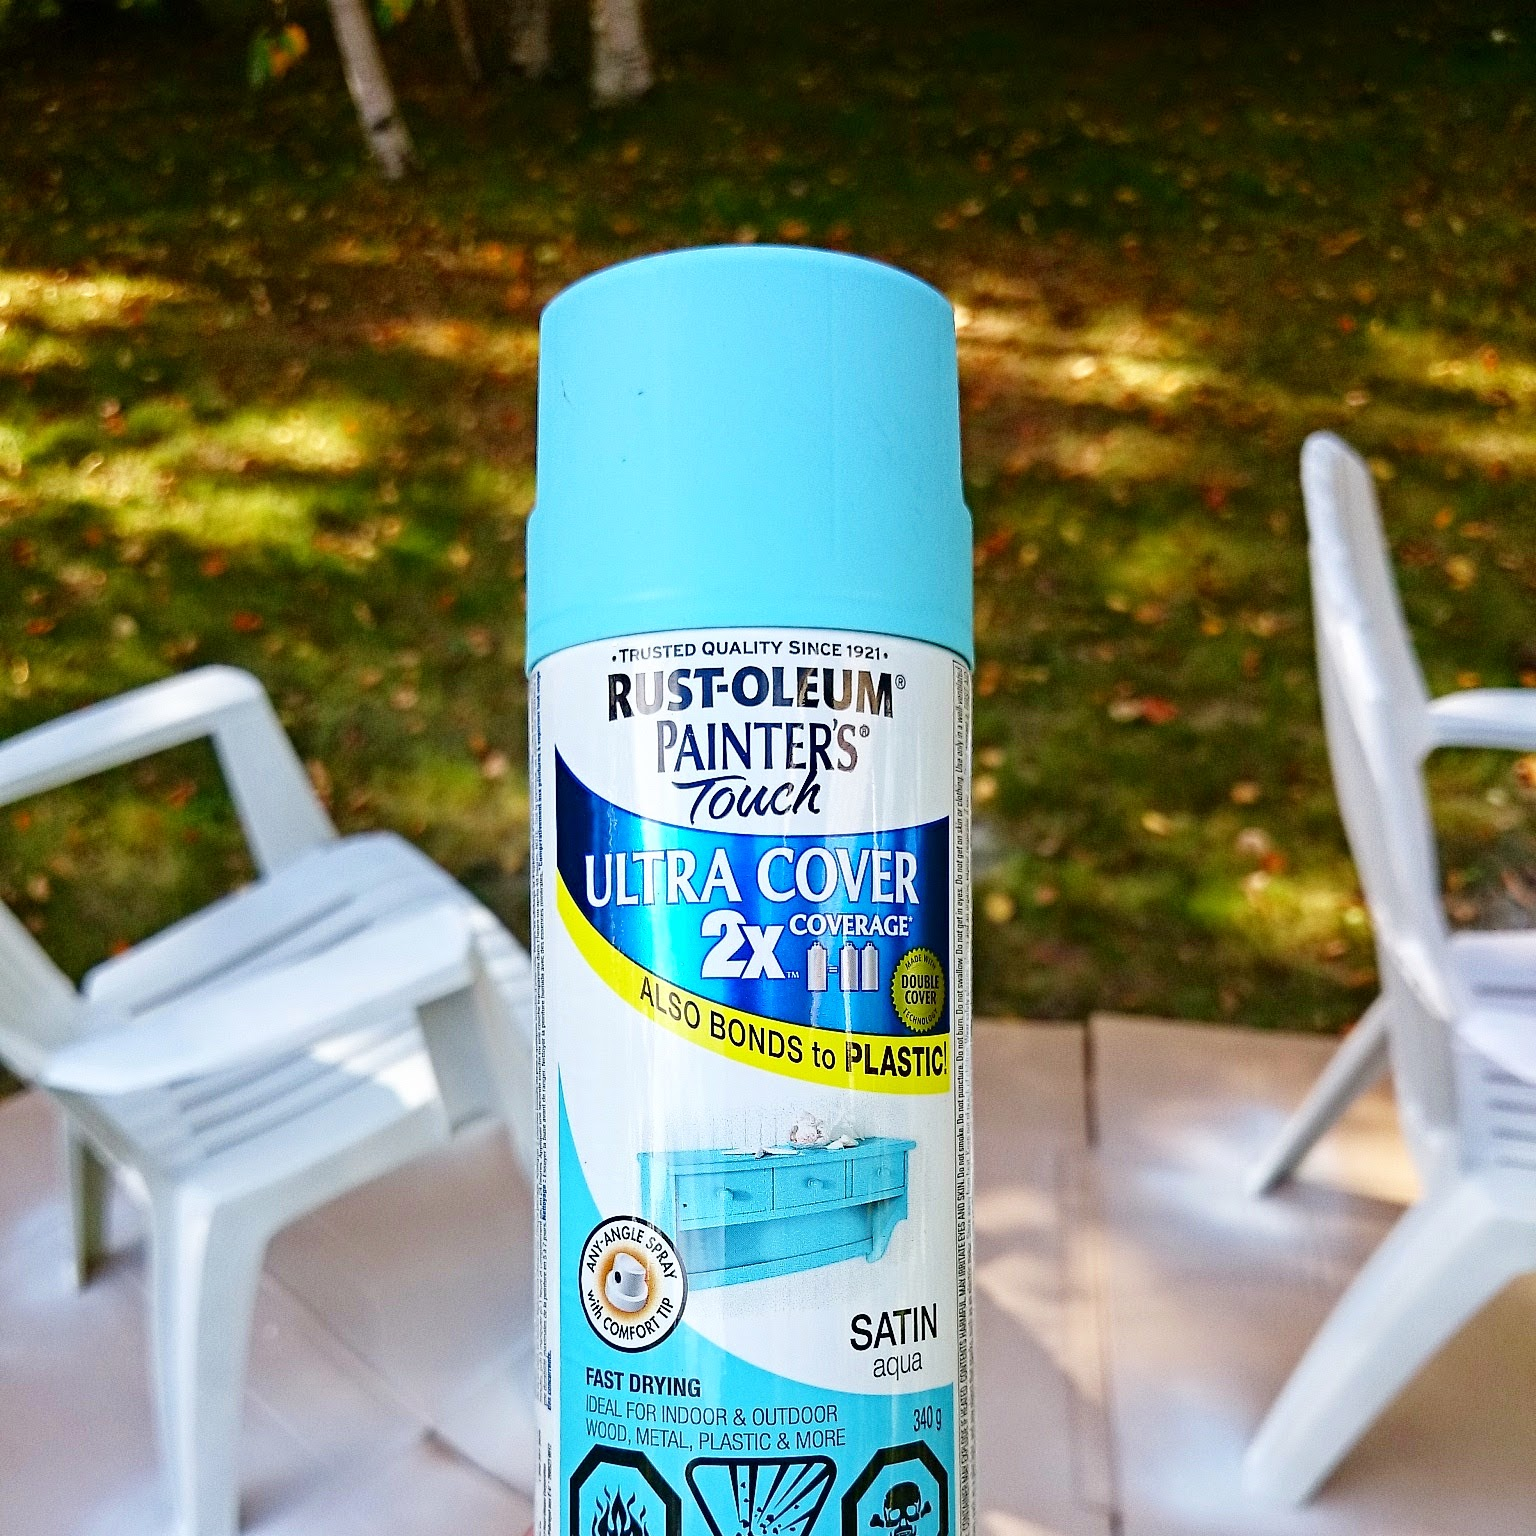 How To Paint Plastic Chairs What Height Should A Chair Rail Go Spray Lawn Dans Le Lakehouse Review Of Rust Oleum On